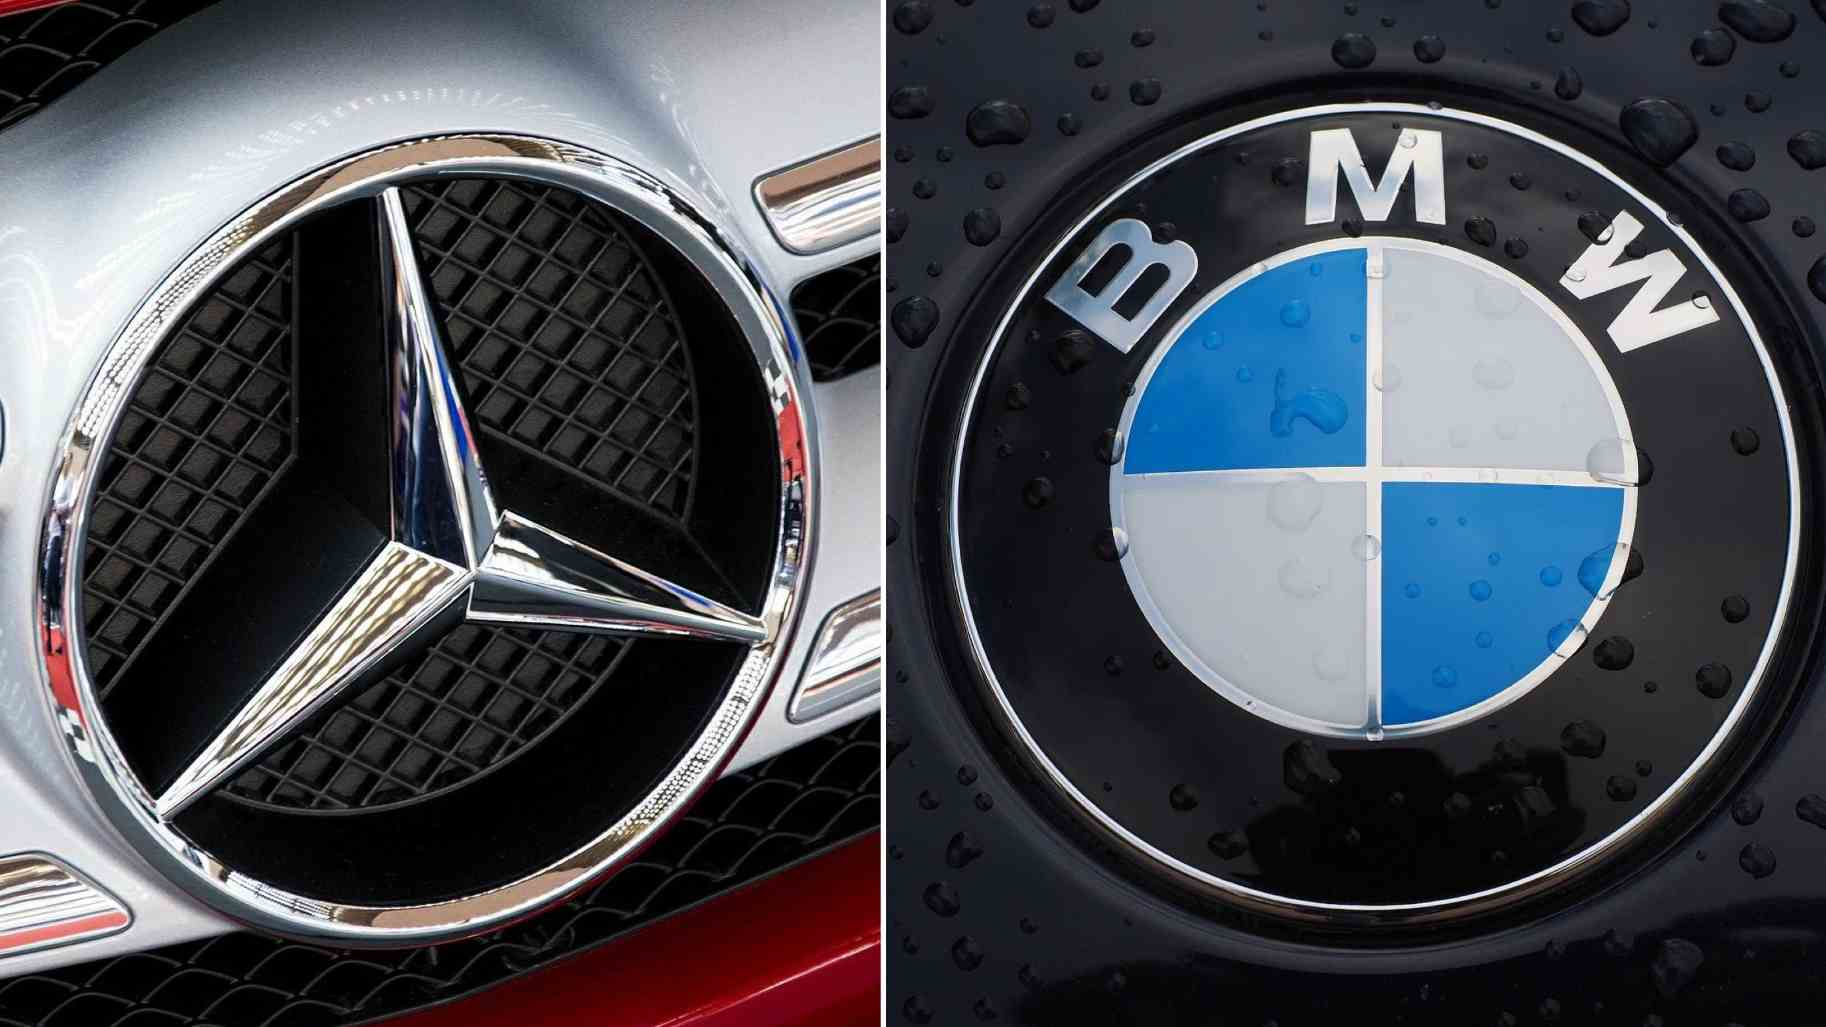 BMW and Mercedes-Benz maker Daimler declined to sign up to the climate organisations' proposals, according to DUH. Image: Darko Stojanovic and Hans Braxmeier via Pixabay.